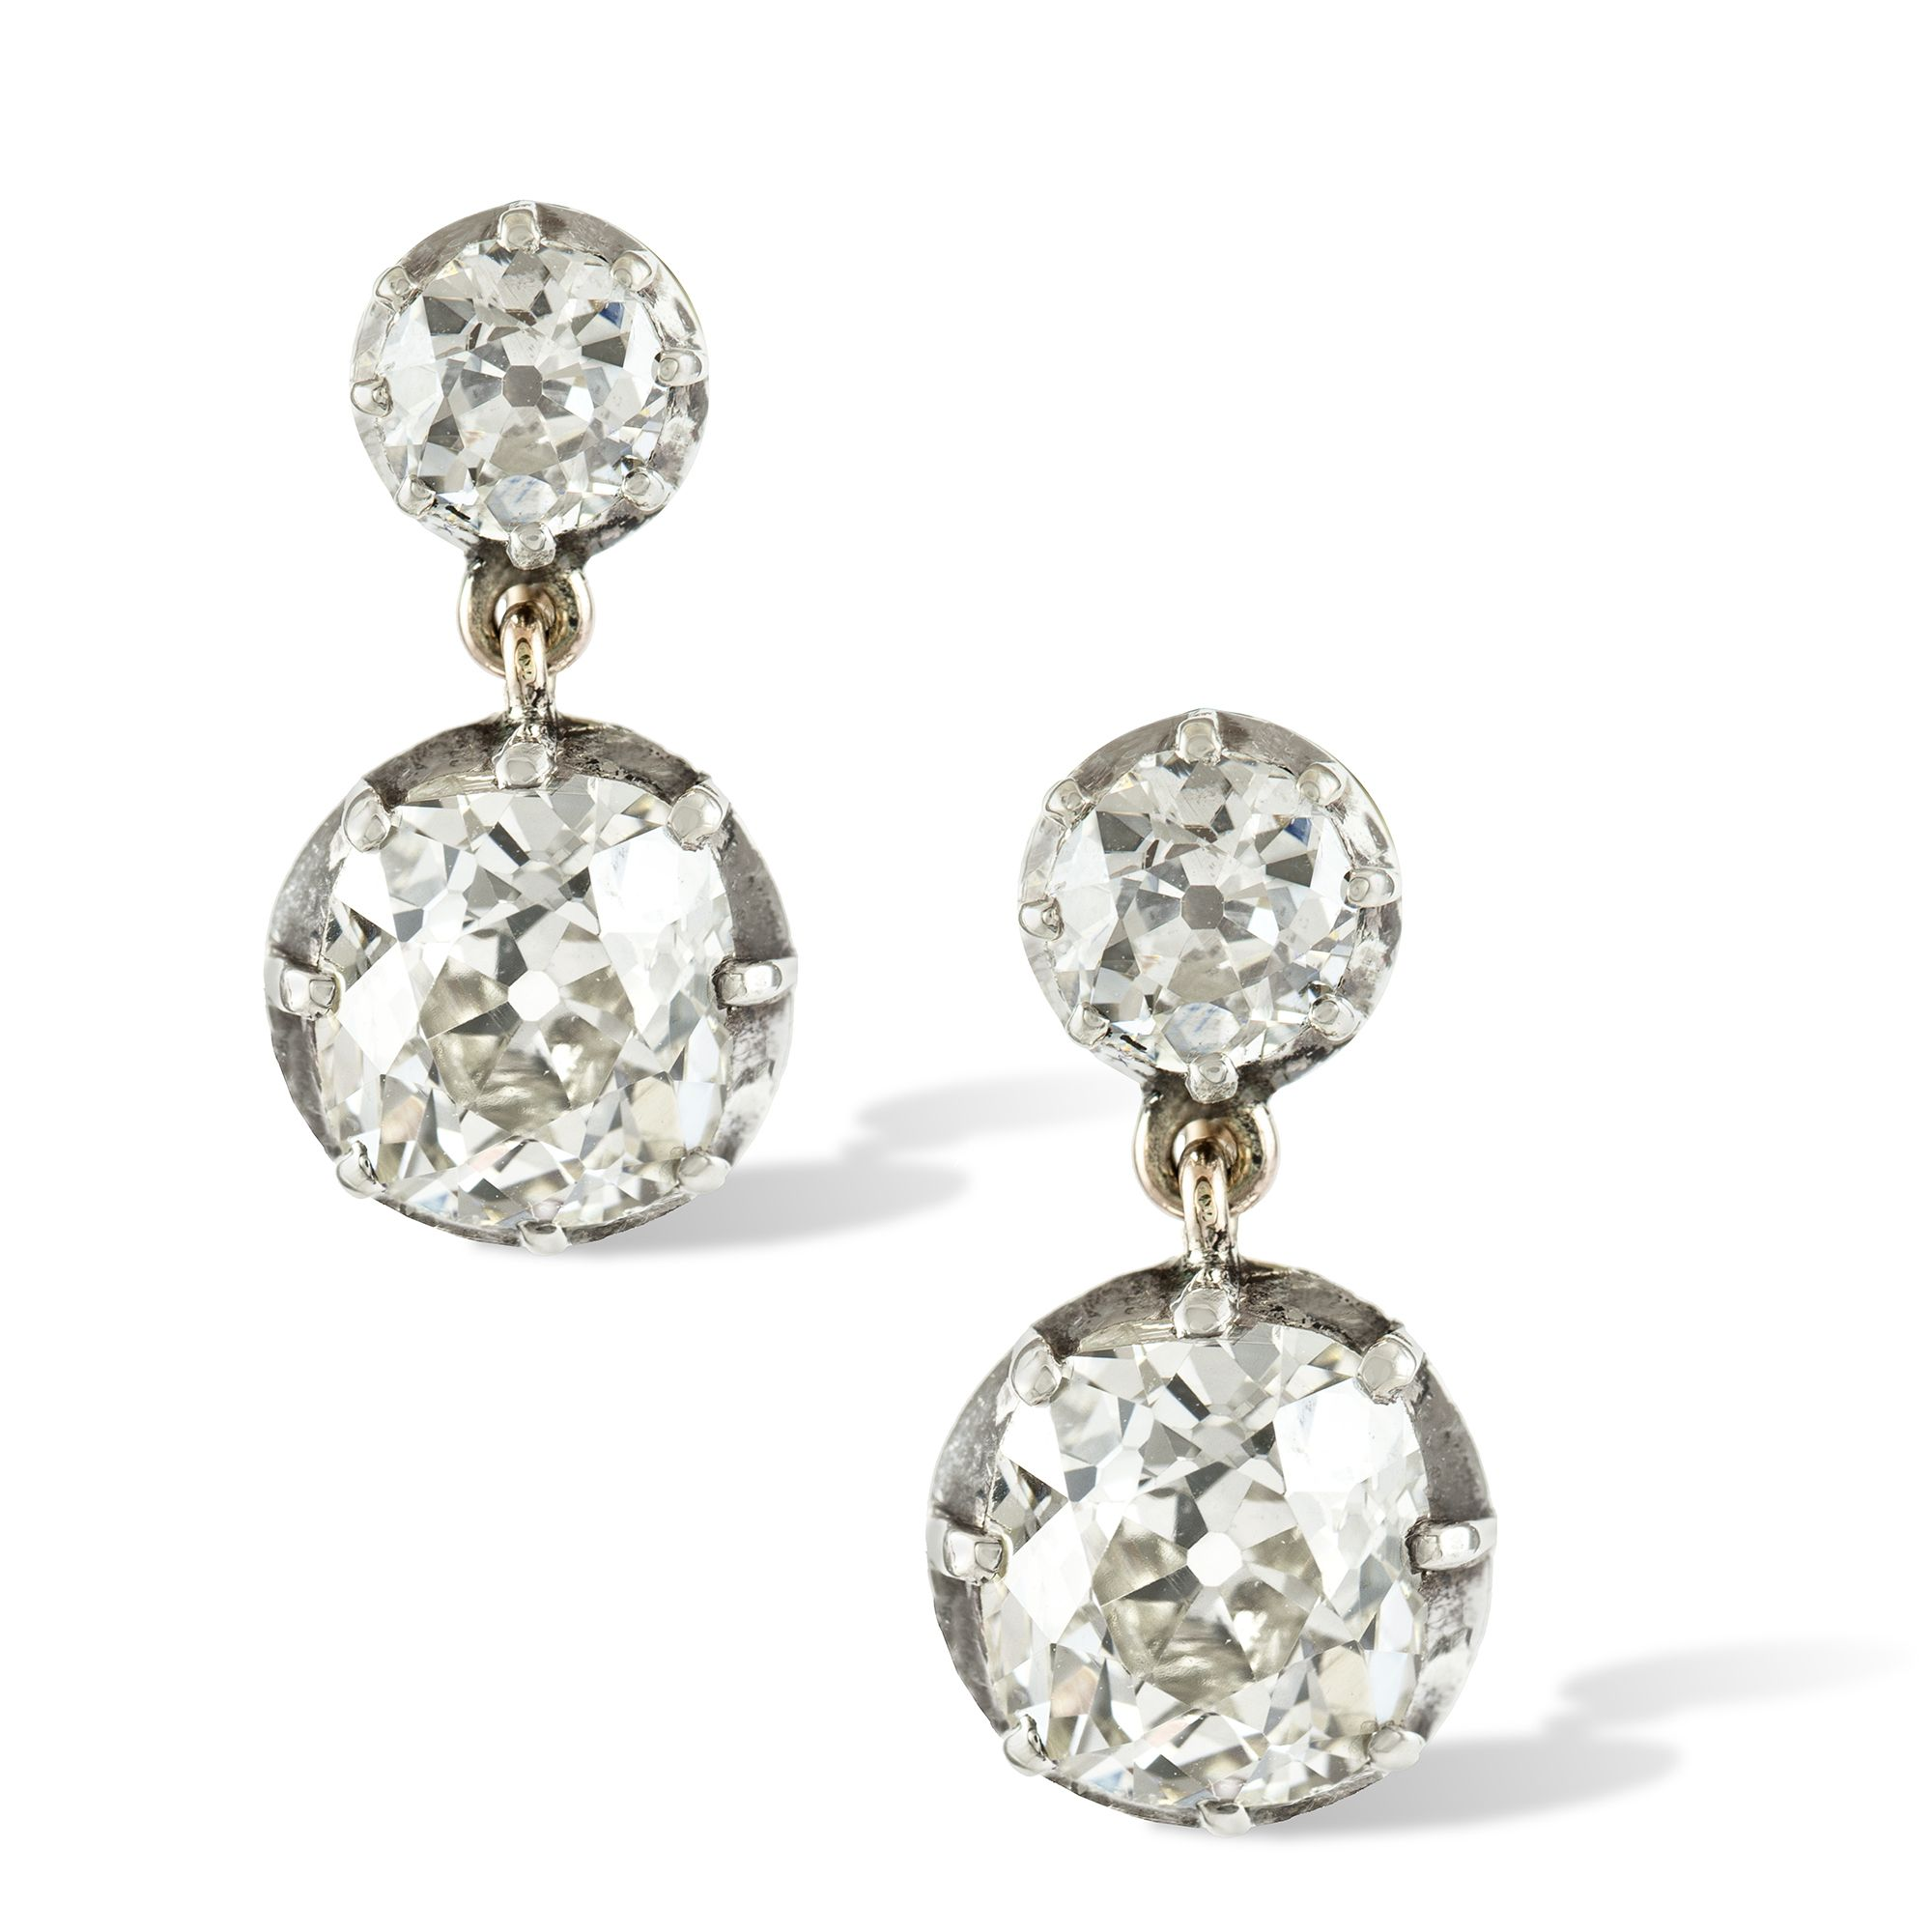 20fd303bfec3a A pair of late-Victorian diamond drop earrings, the two cushion ...